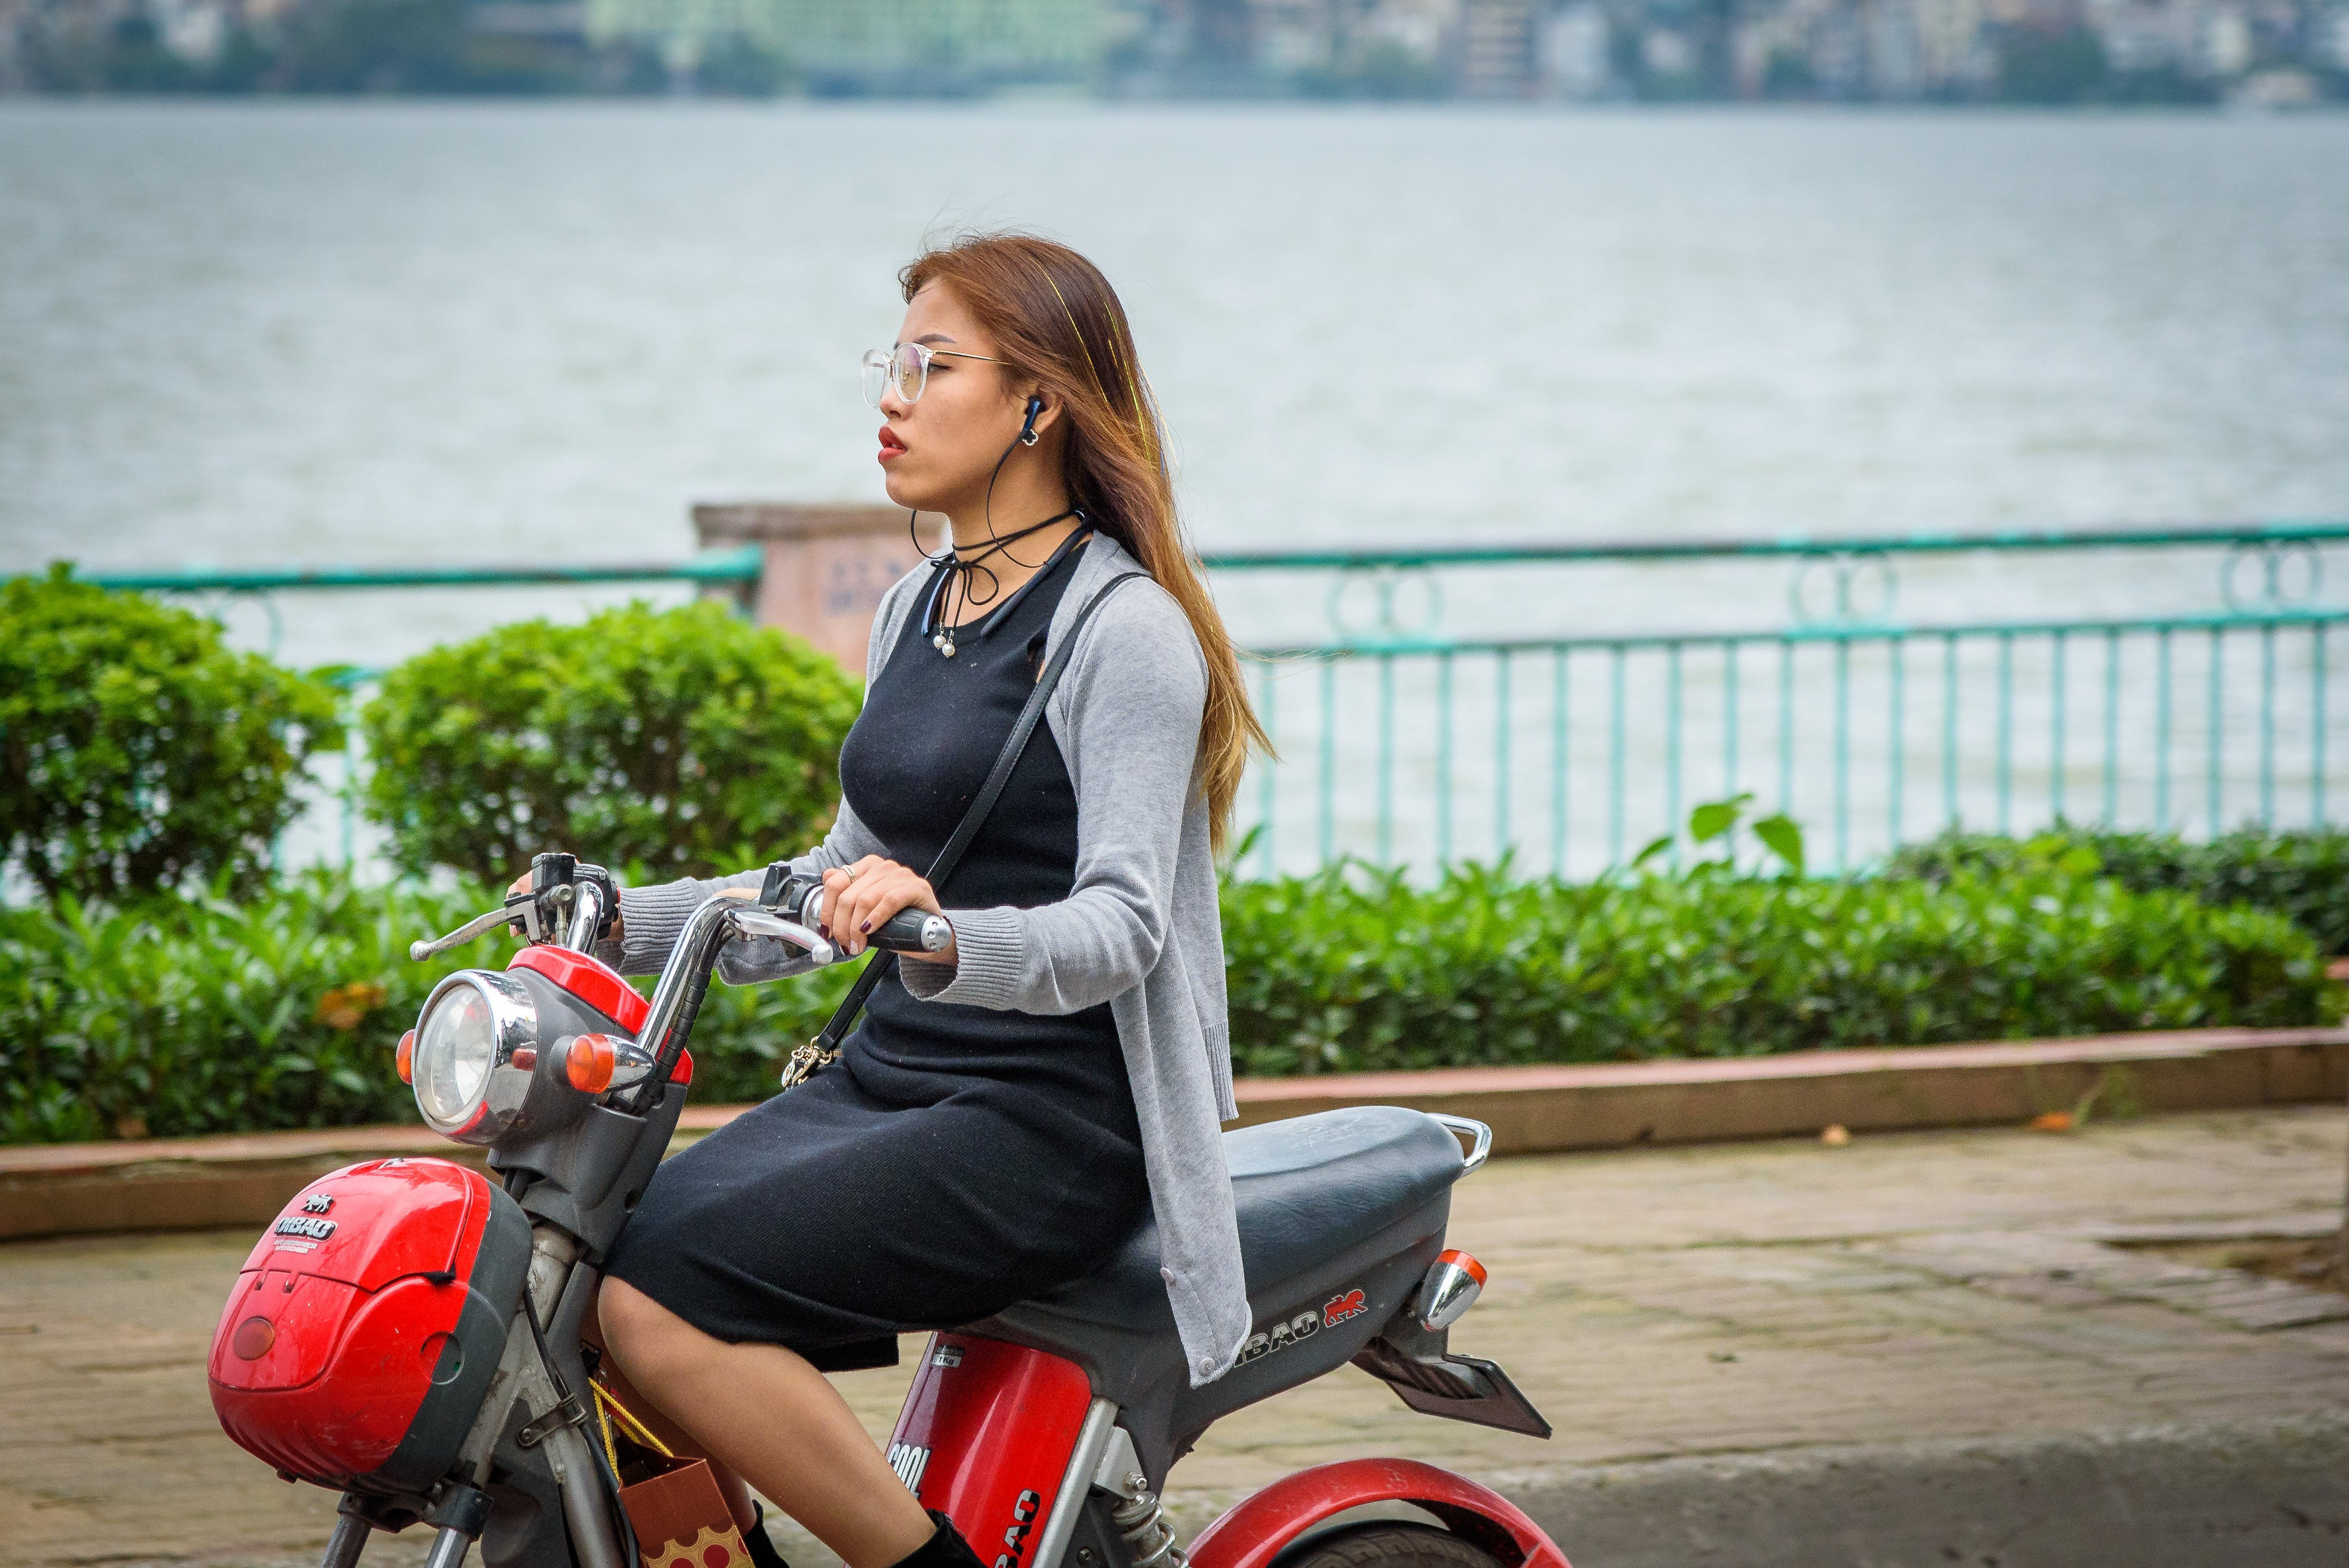 Woman Riding Red Motor Scooter